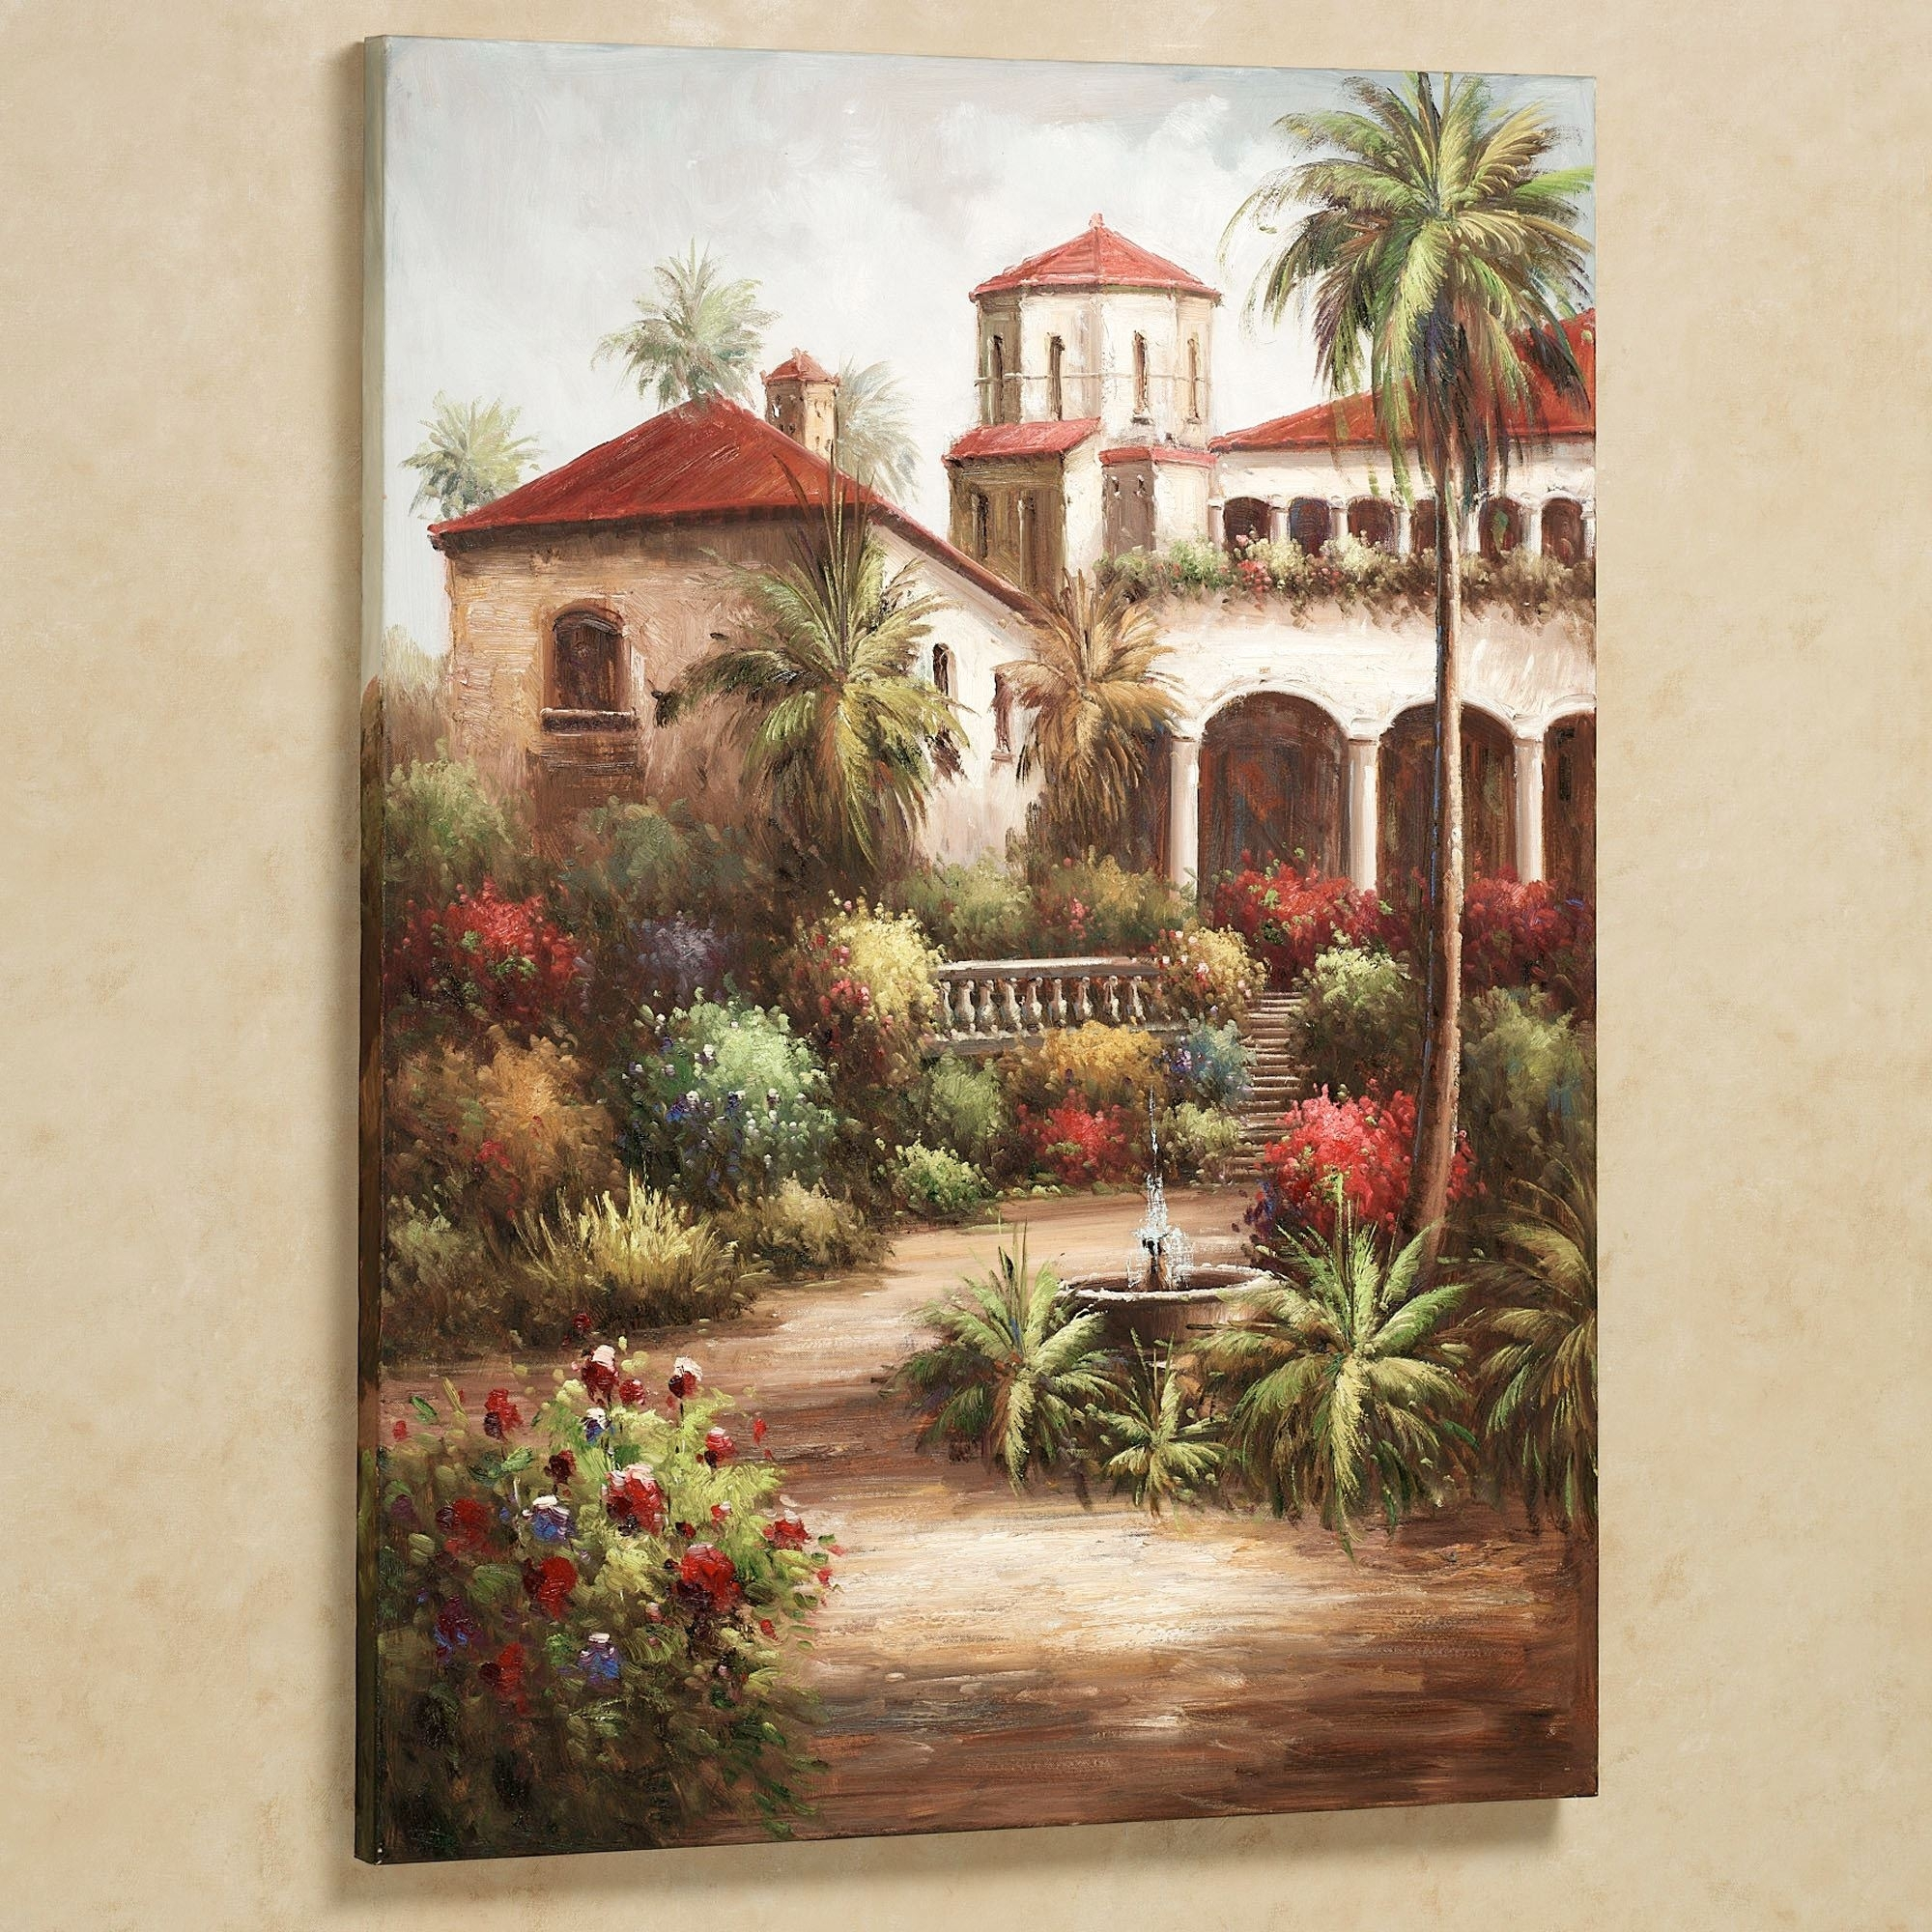 Tuscan Wall Art Garden – Awesome House : Kitchen Tuscan Wall Art Tile Within Best And Newest Tuscan Wall Art (View 3 of 20)